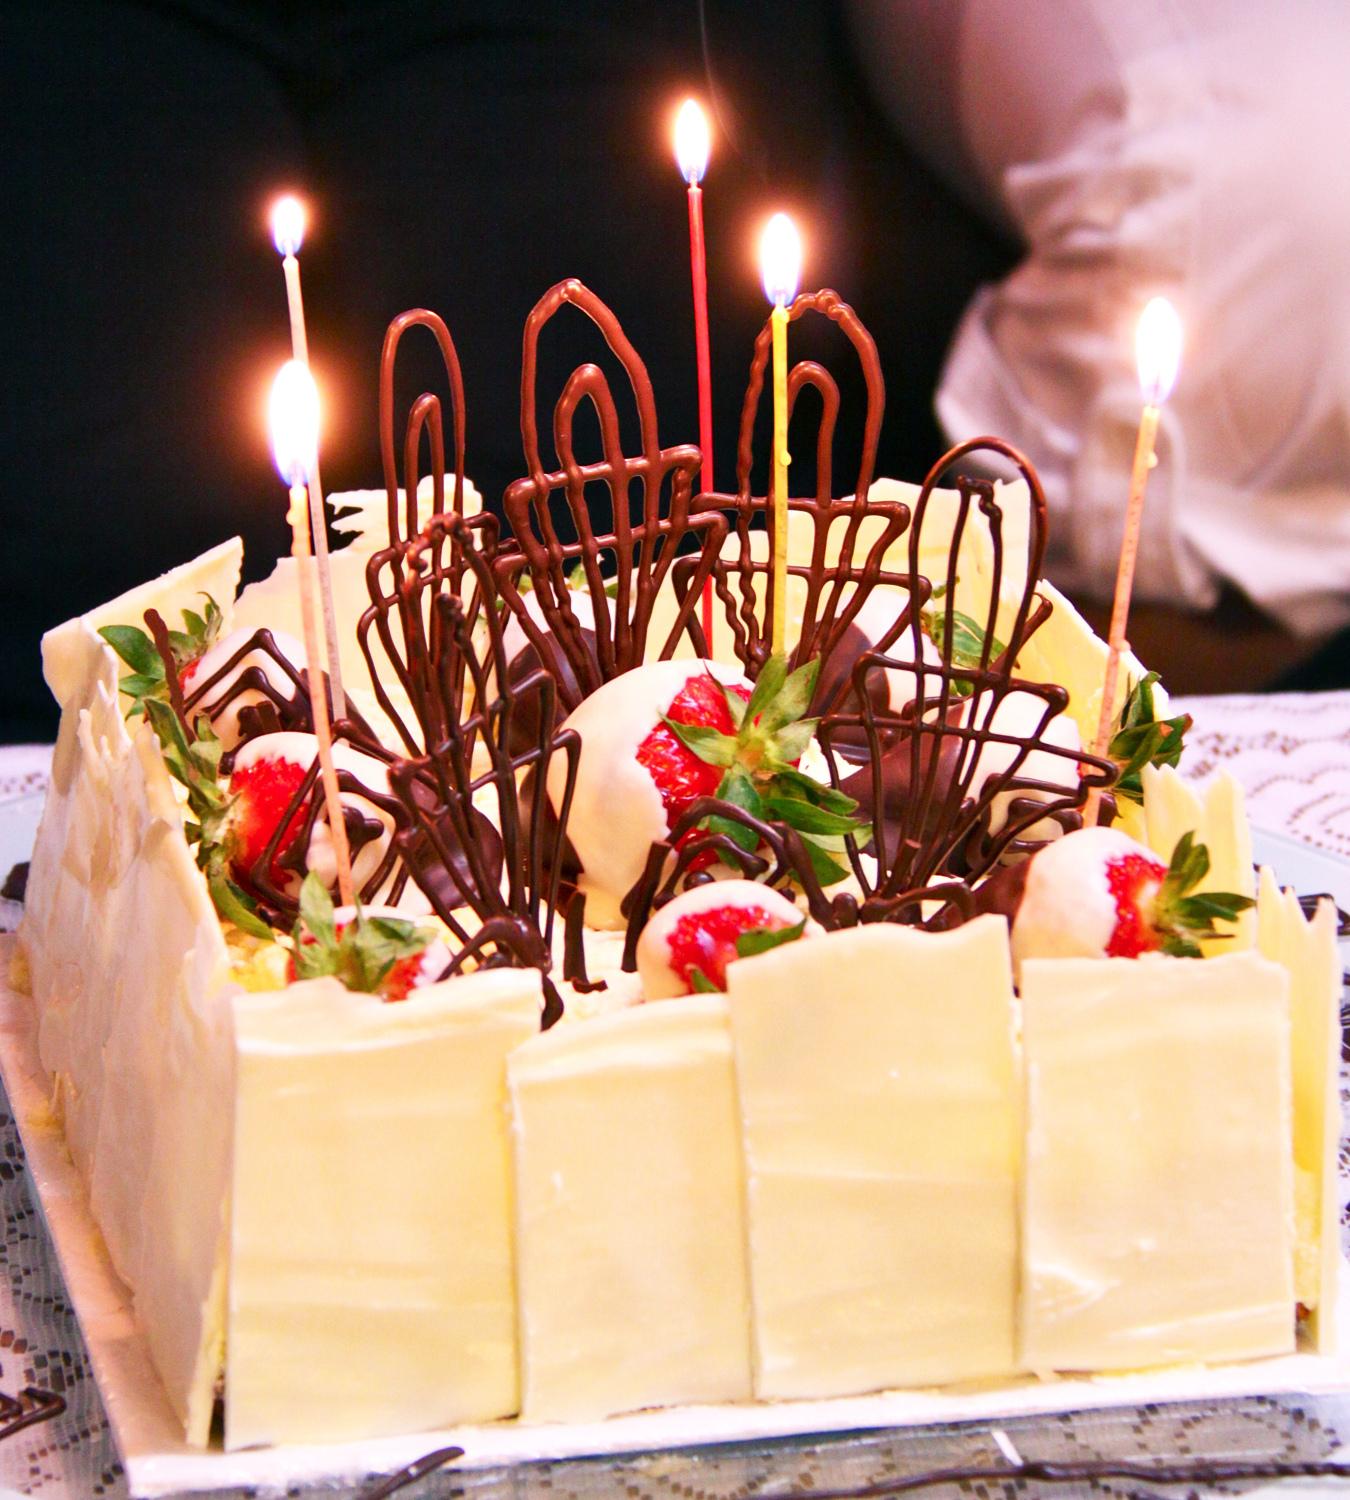 Strawberry Birthday Cakes Sweet Art Milbre Moments Chocolate Cake